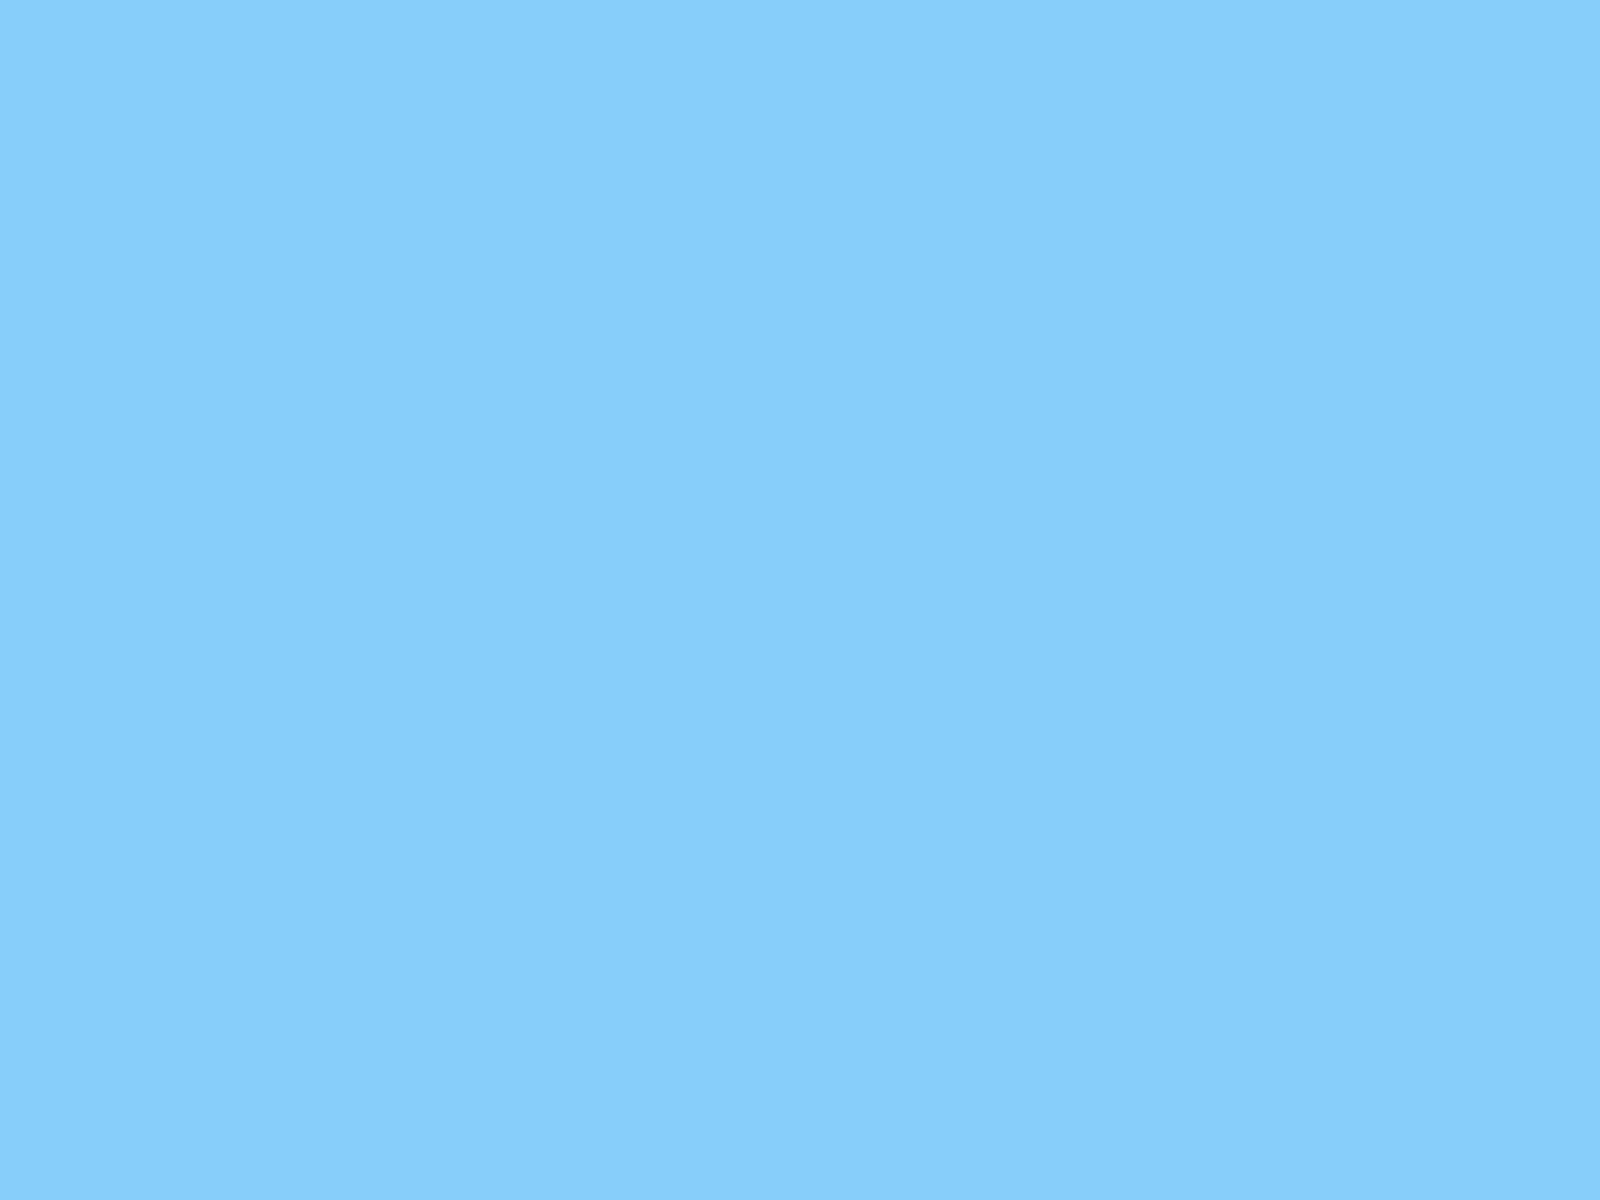 1600x1200 Light Sky Blue Solid Color Background